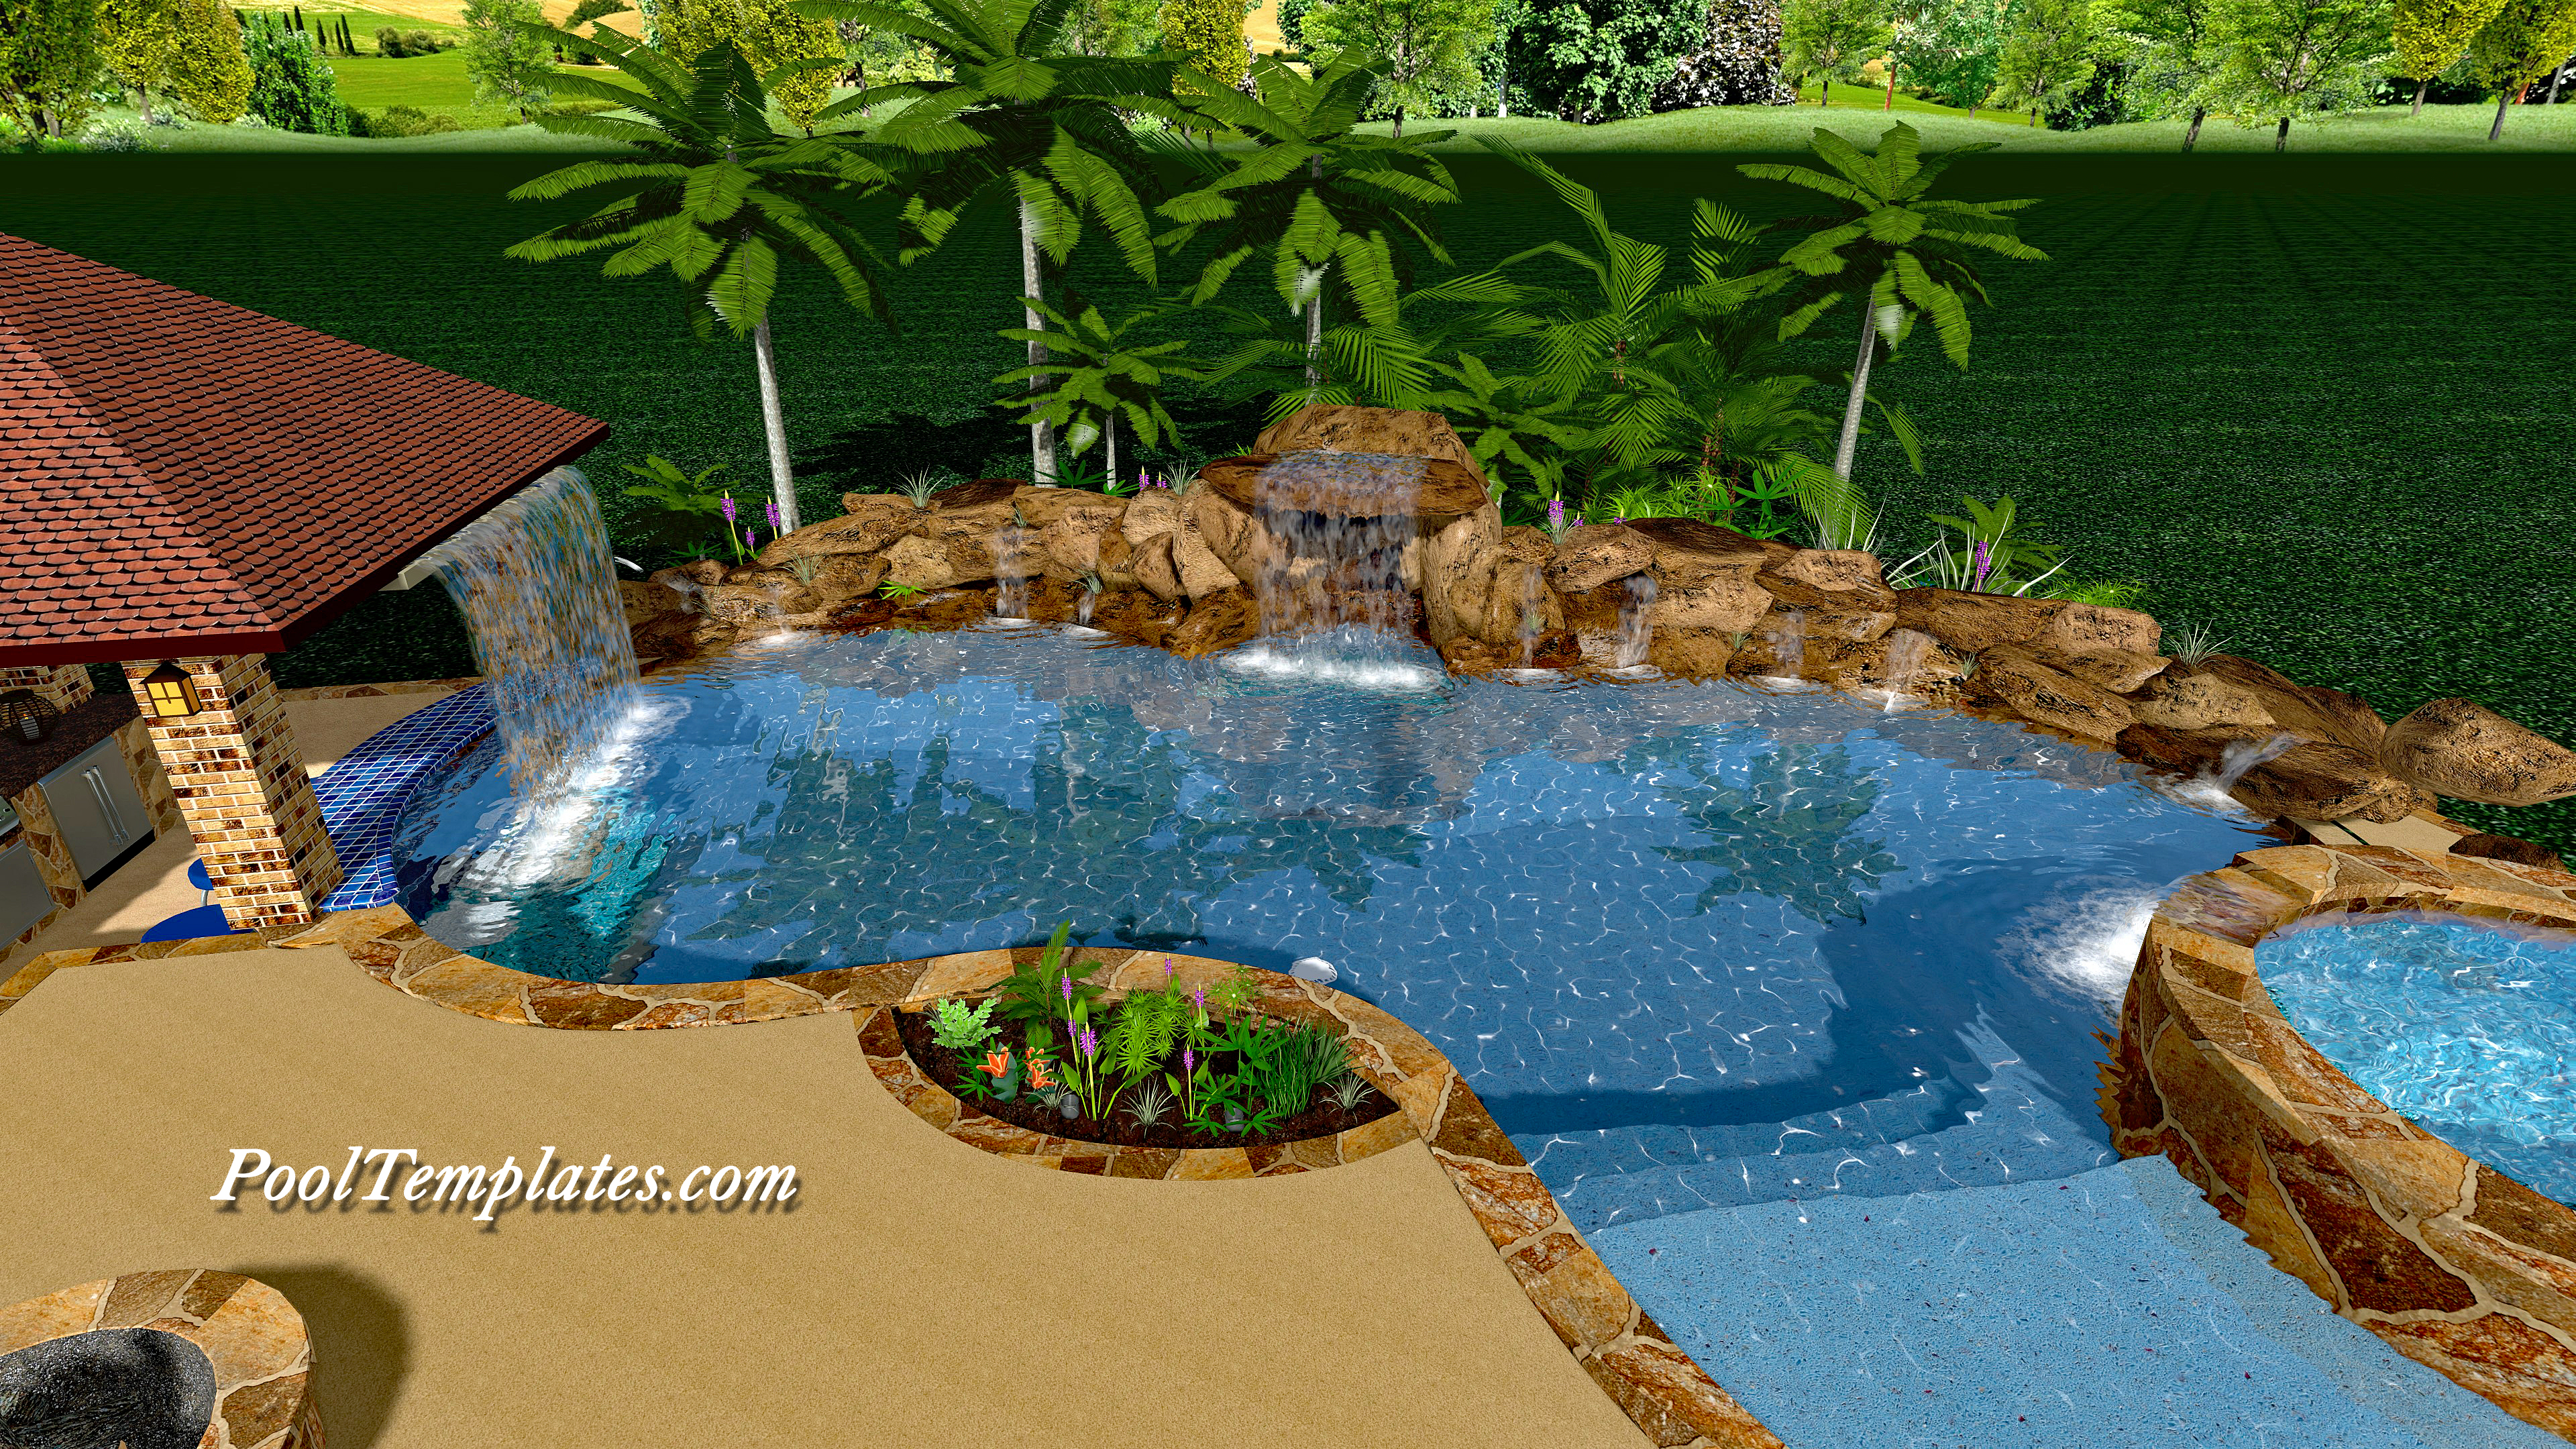 Swimming Pool Design Software Pooltemplates Com